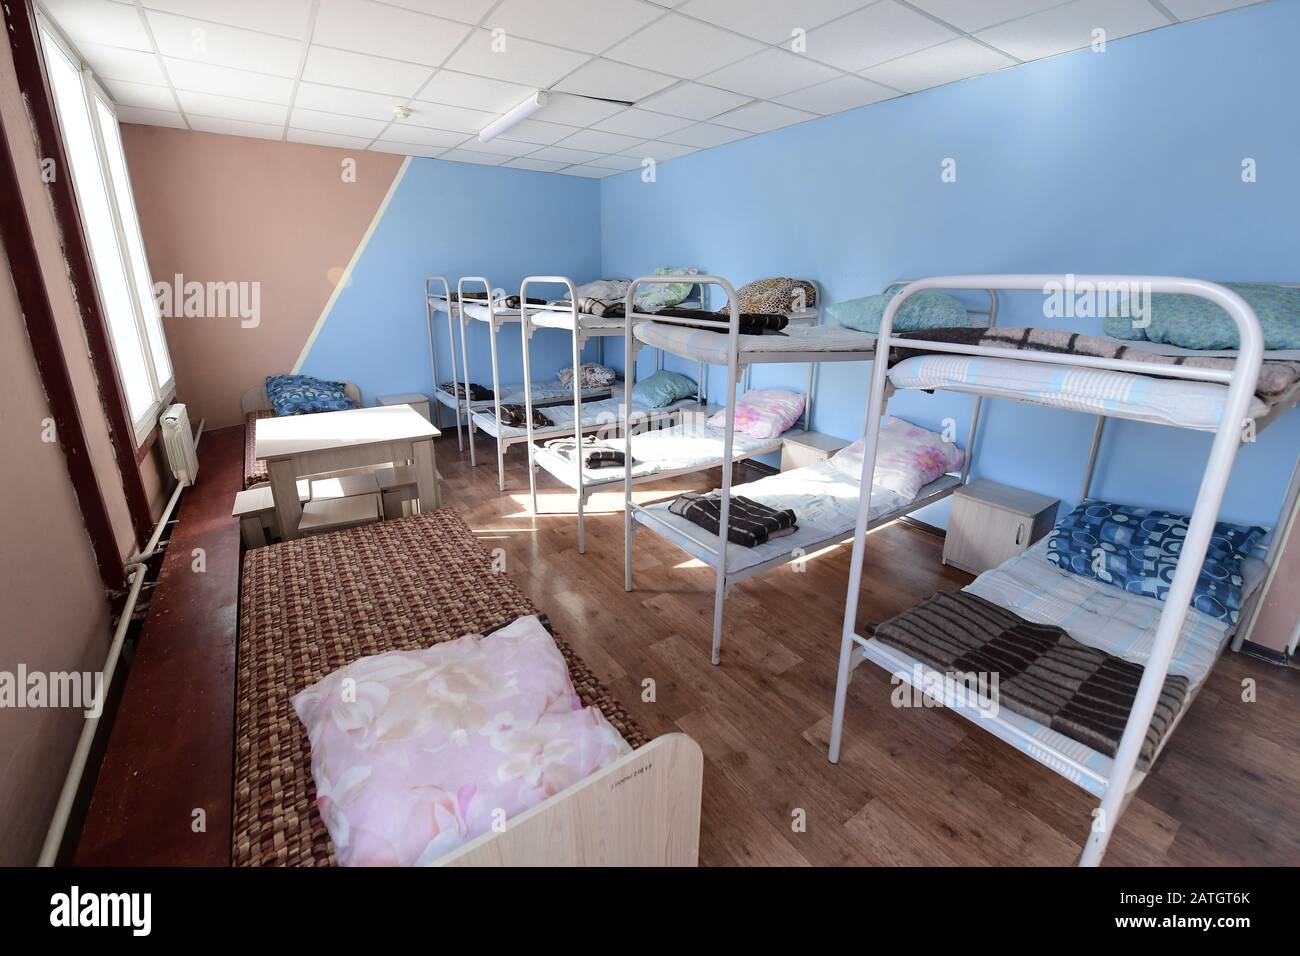 Primorye Territory Russia February 3 2020 Bunk Beds In A Bedroom In A Quarantine Facility For